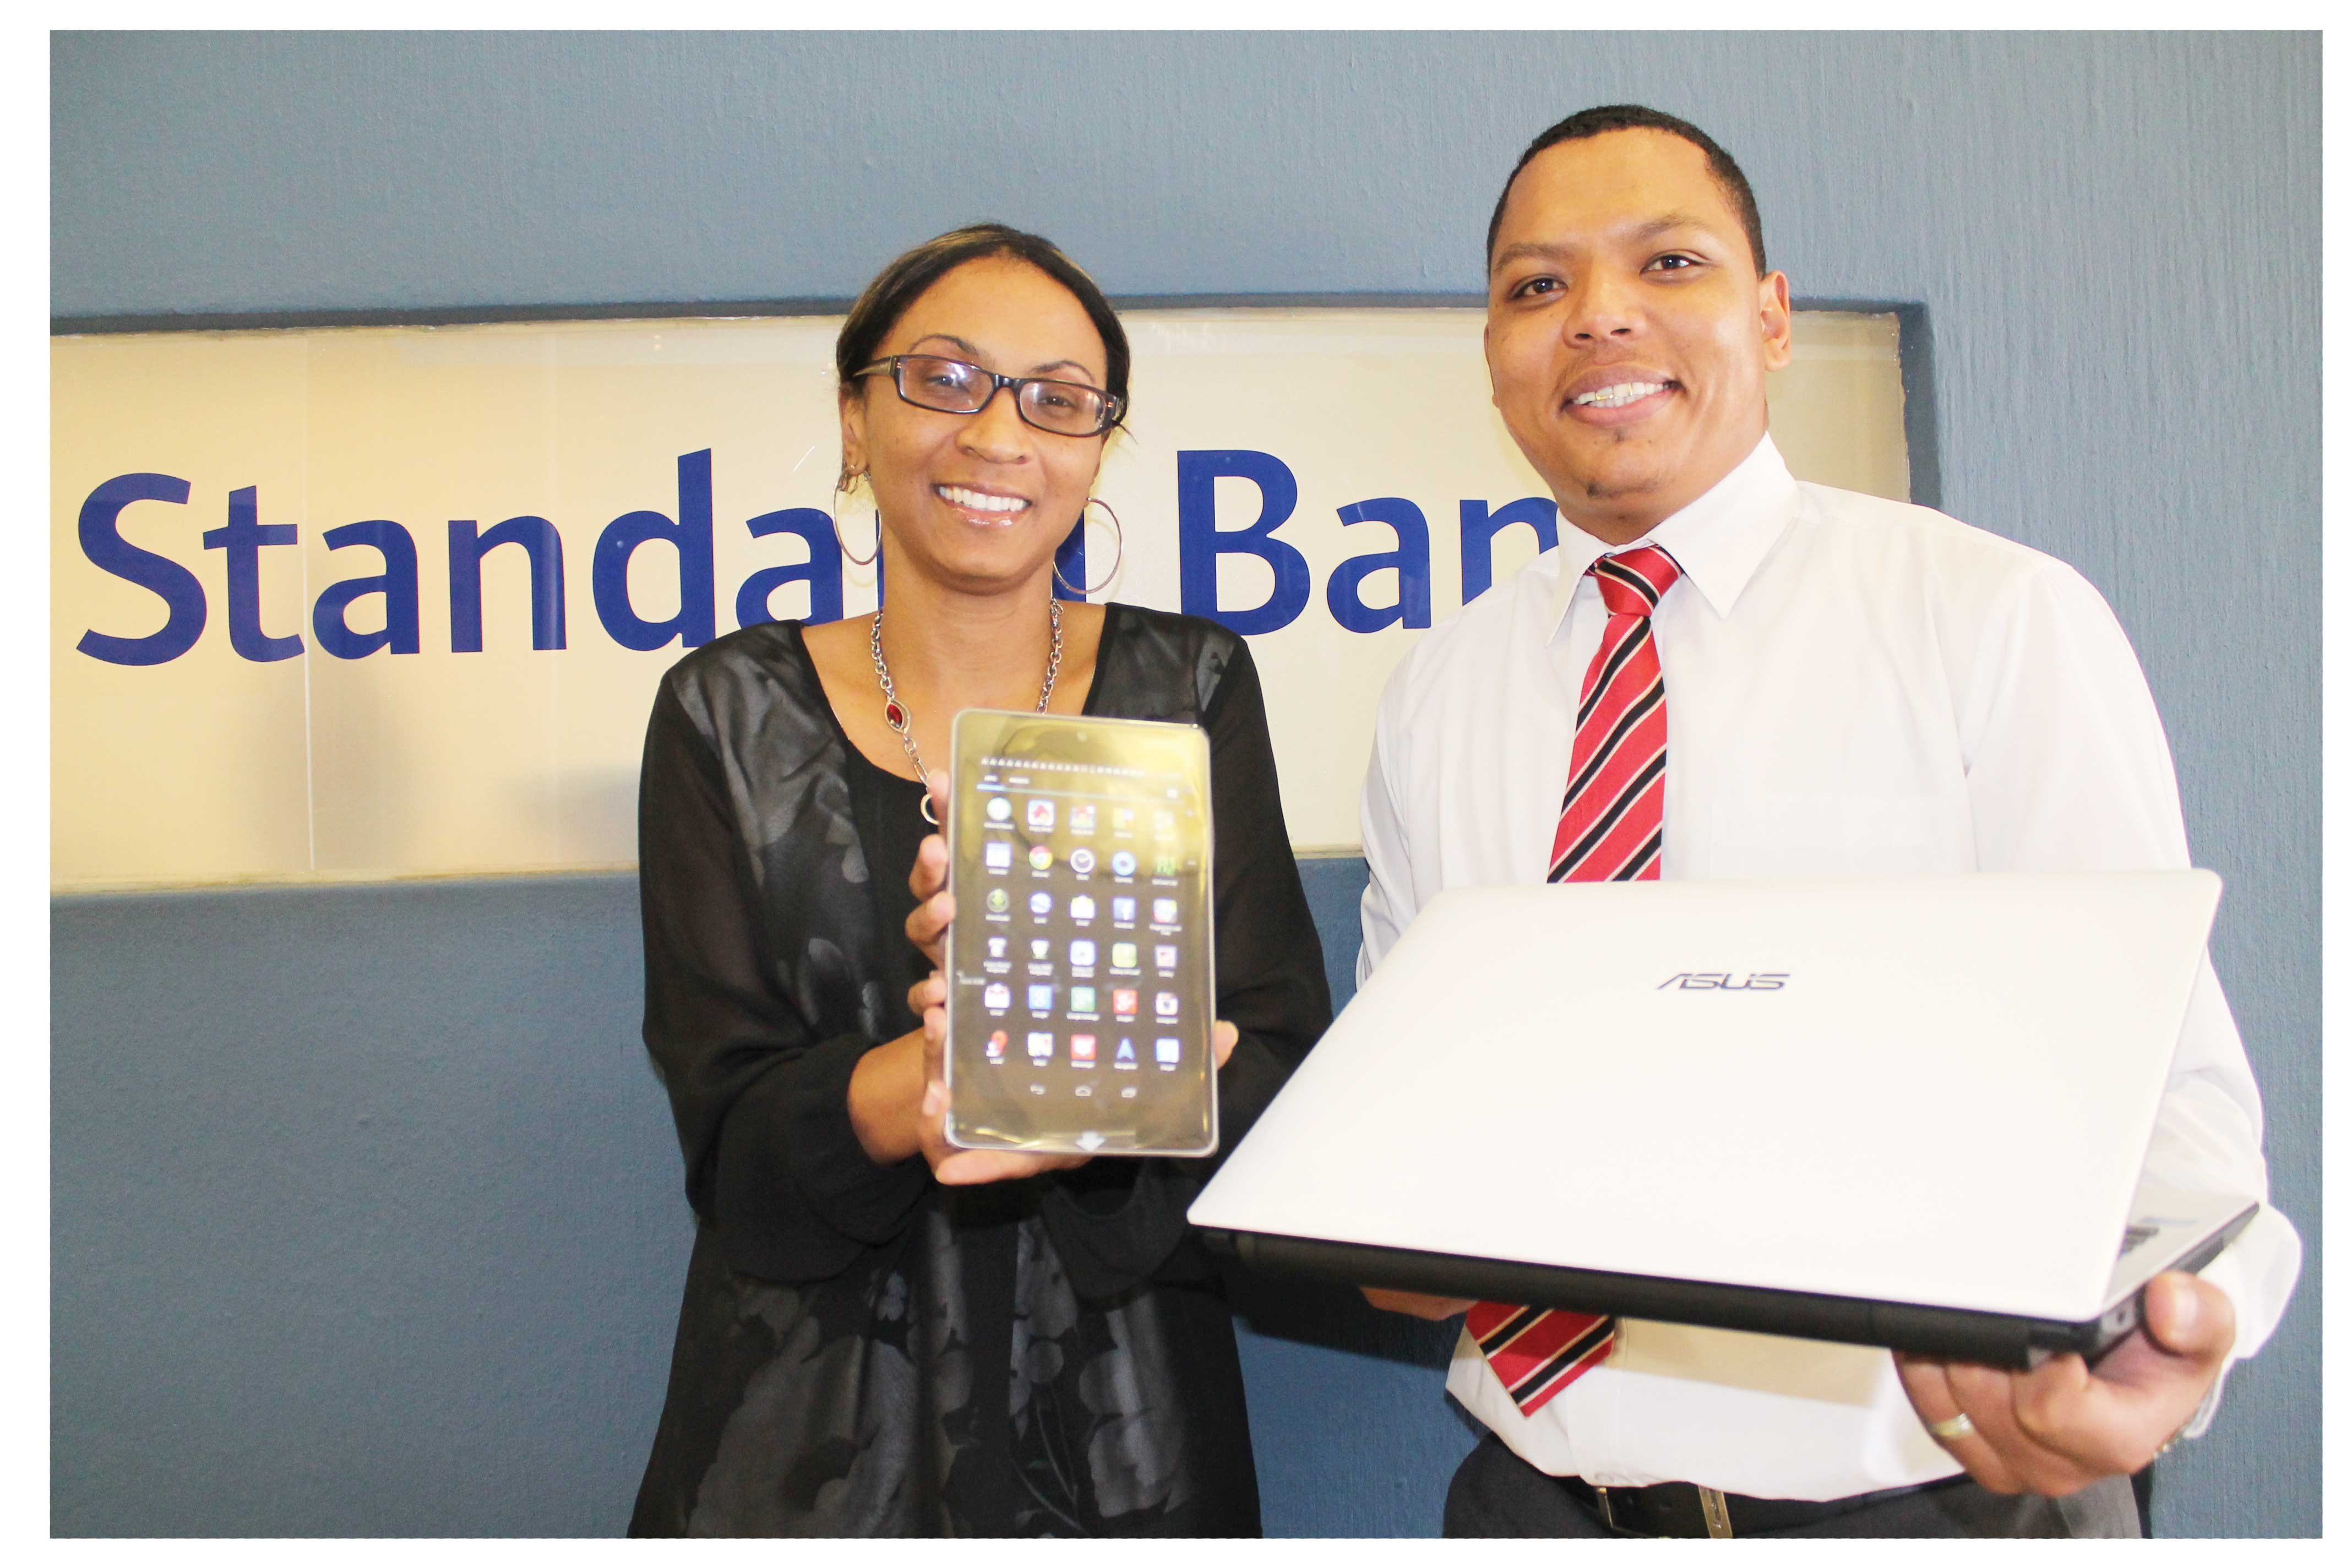 Offering the latest in smart device deals, Standard Bank's Head of Personal and Business Banking, Baronice Hans and Manager of Internet Banking, Rivan Meyer show the Asus laptop and Google Nexus Tablet.